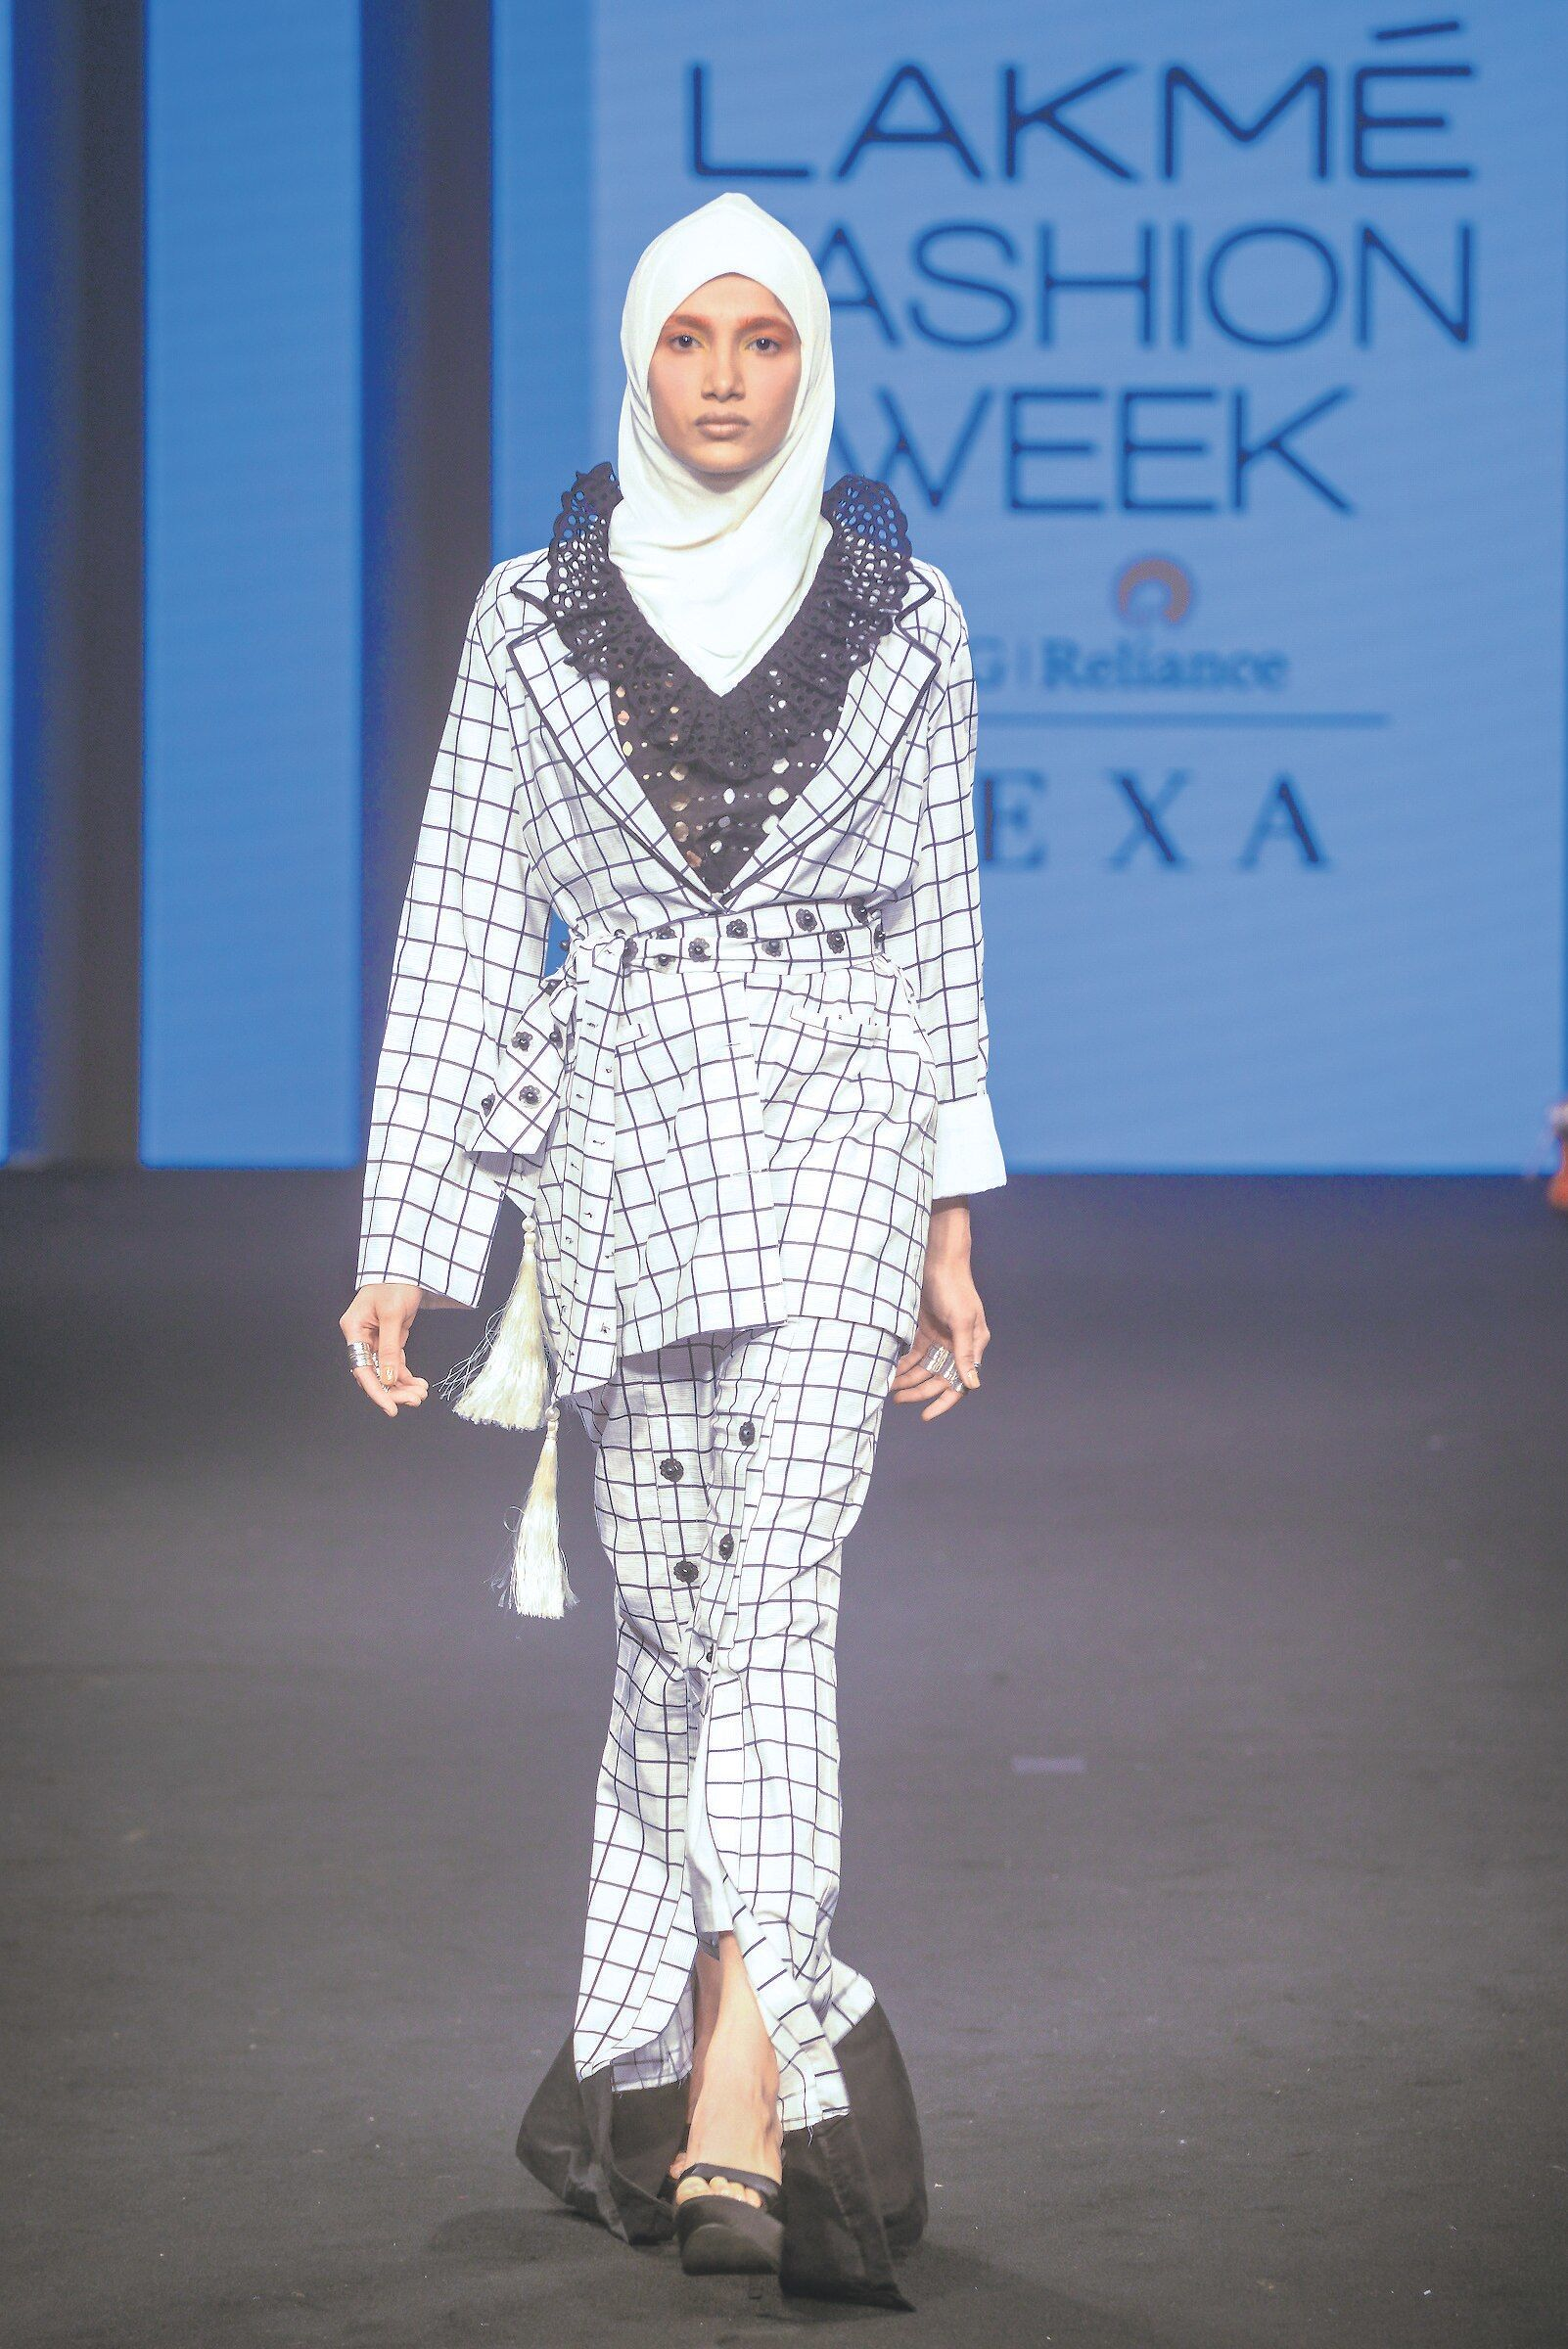 Muneeba Nadeem's modest collection at the Summer Fashion Week / Modern Restaurant in Lacme 2019